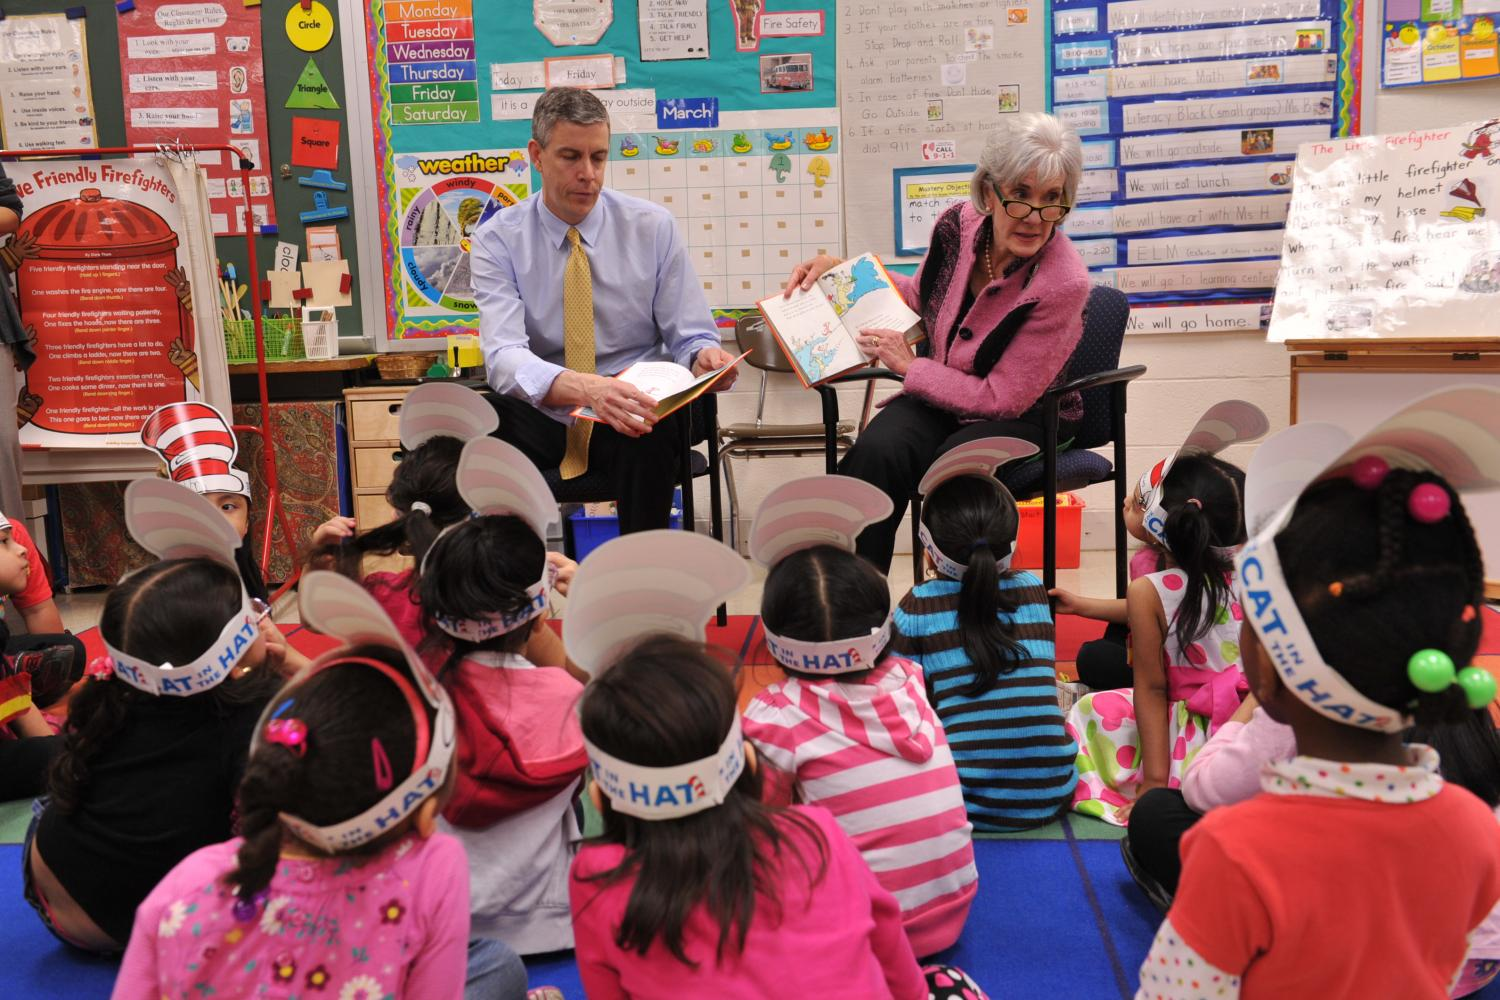 Former+U.S.+Dept.+of+Education+Secretary+Arne+Duncan+reads+a+book+to+Rolling+Terrace+Elementary+School+students+in+Montgomery+County.+